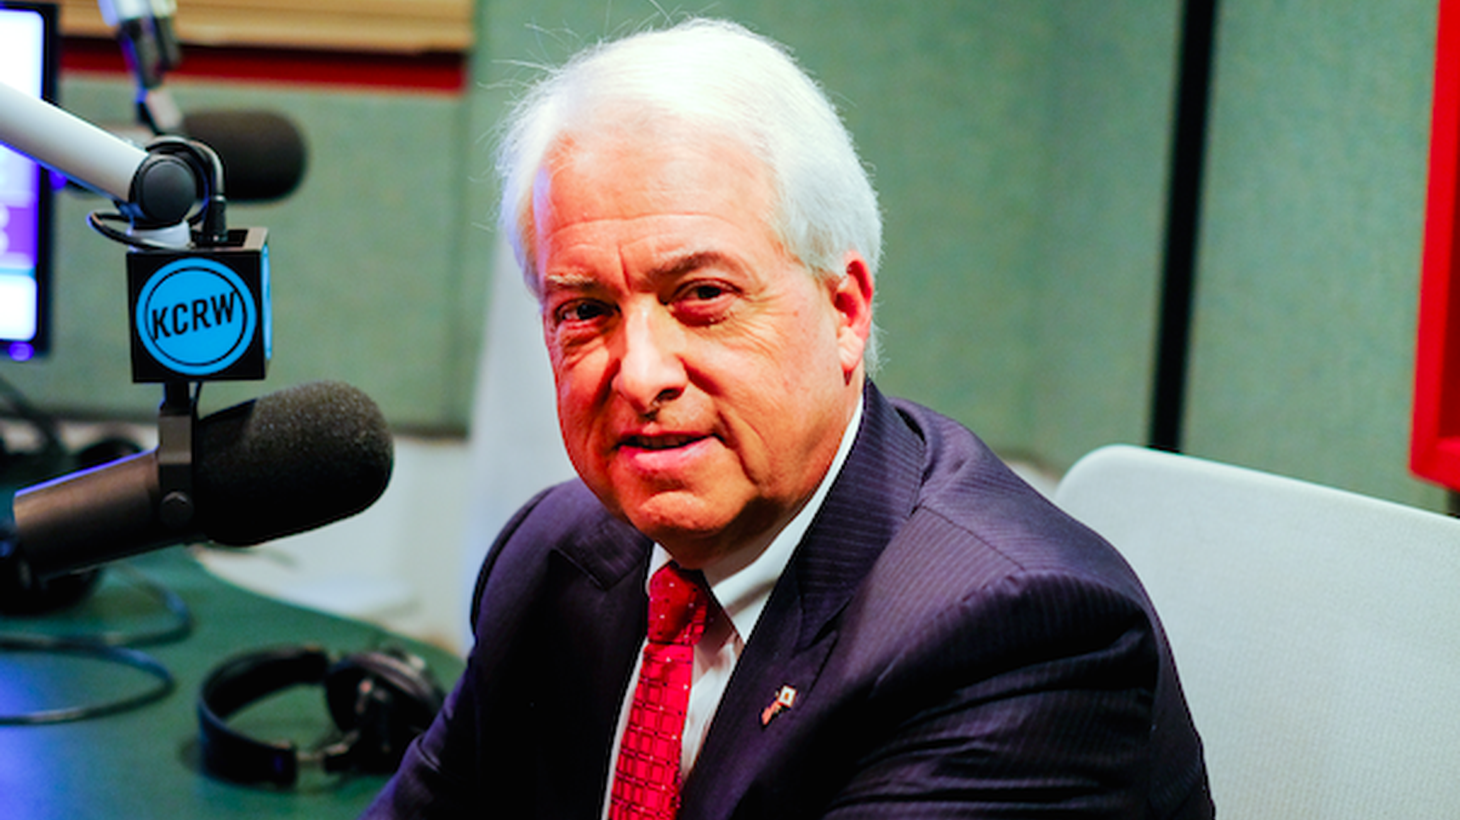 John Cox one of the Republicans in the California governor's race. Originally from Illinois, he's a venture capitalist living in Rancho Santa Fe. He backs President Trump and wants to end California's sanctuary state law.